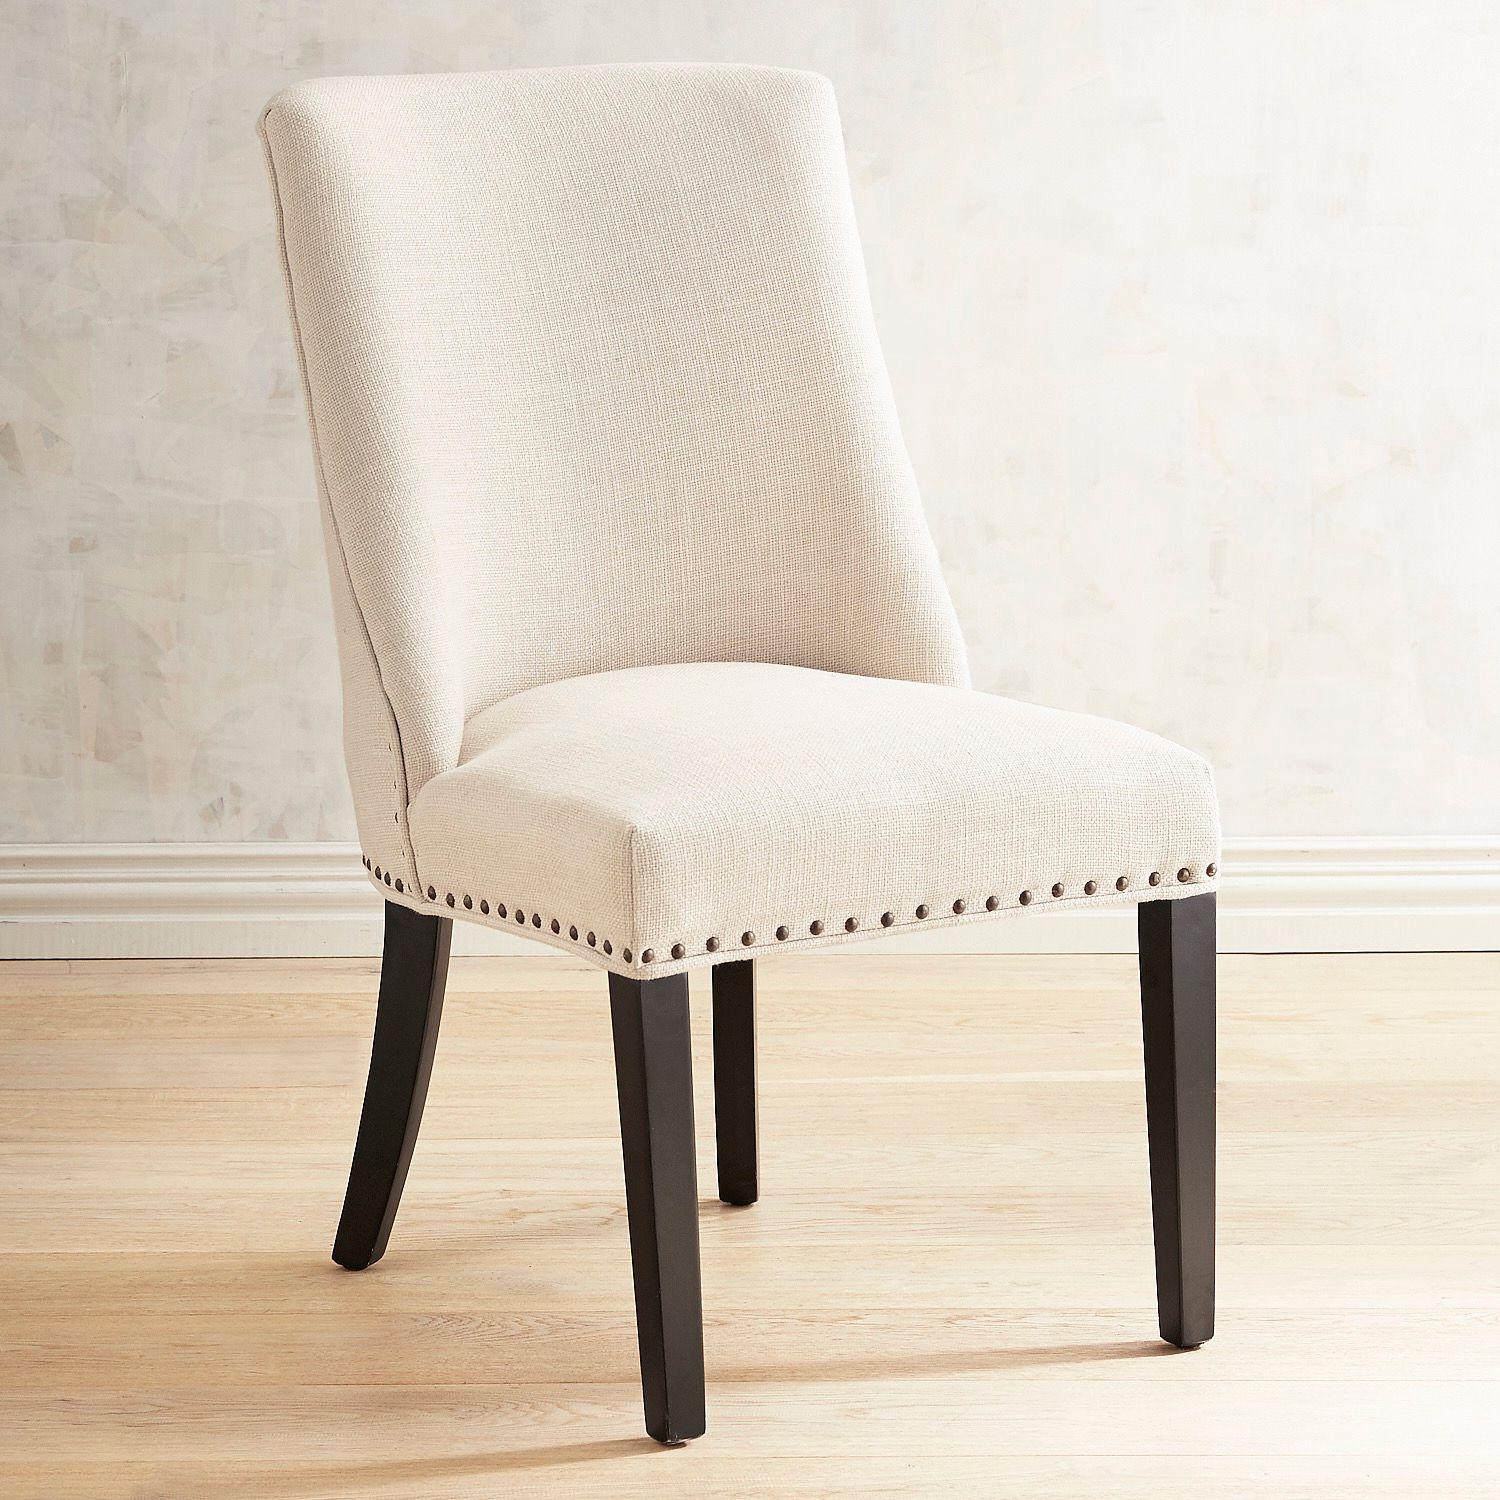 Corinne Linen Dining Chair with Black Espresso Wood | Pier 1